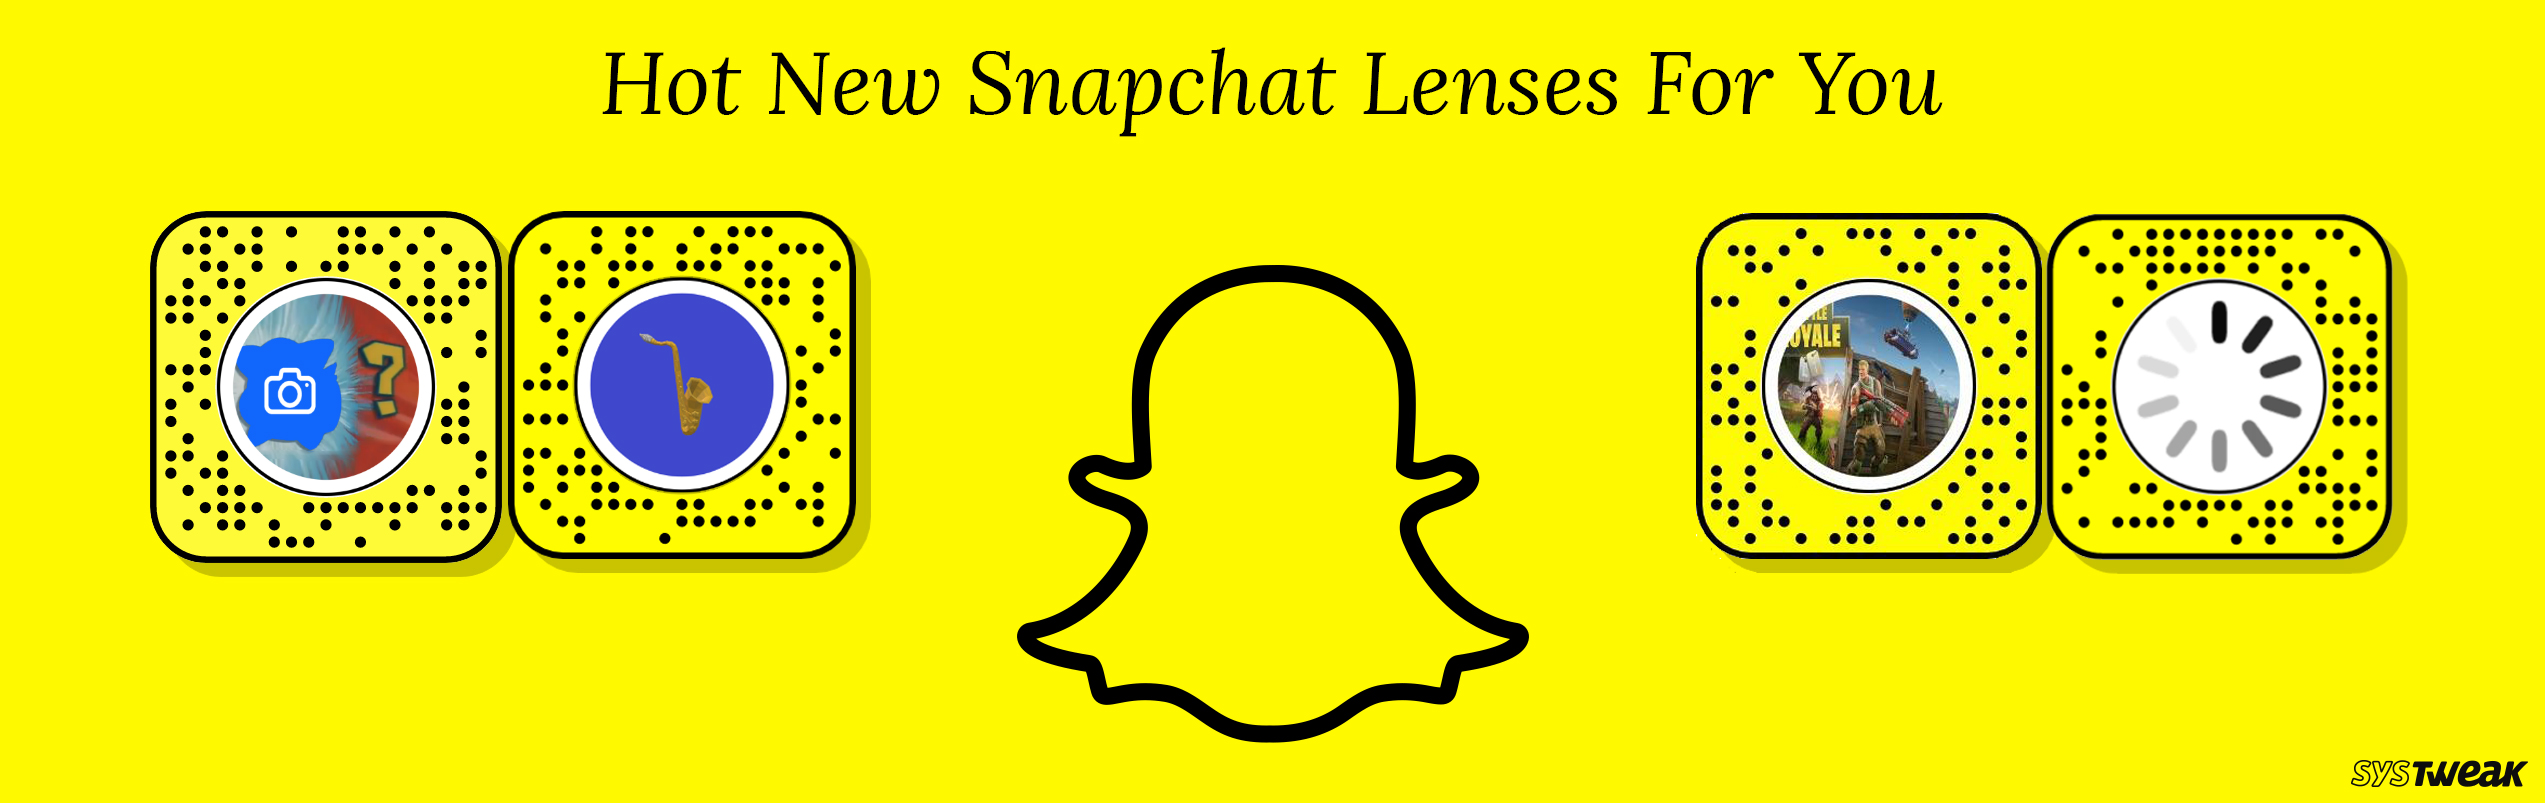 8 New Snapchat Lenses You Would Love To Use